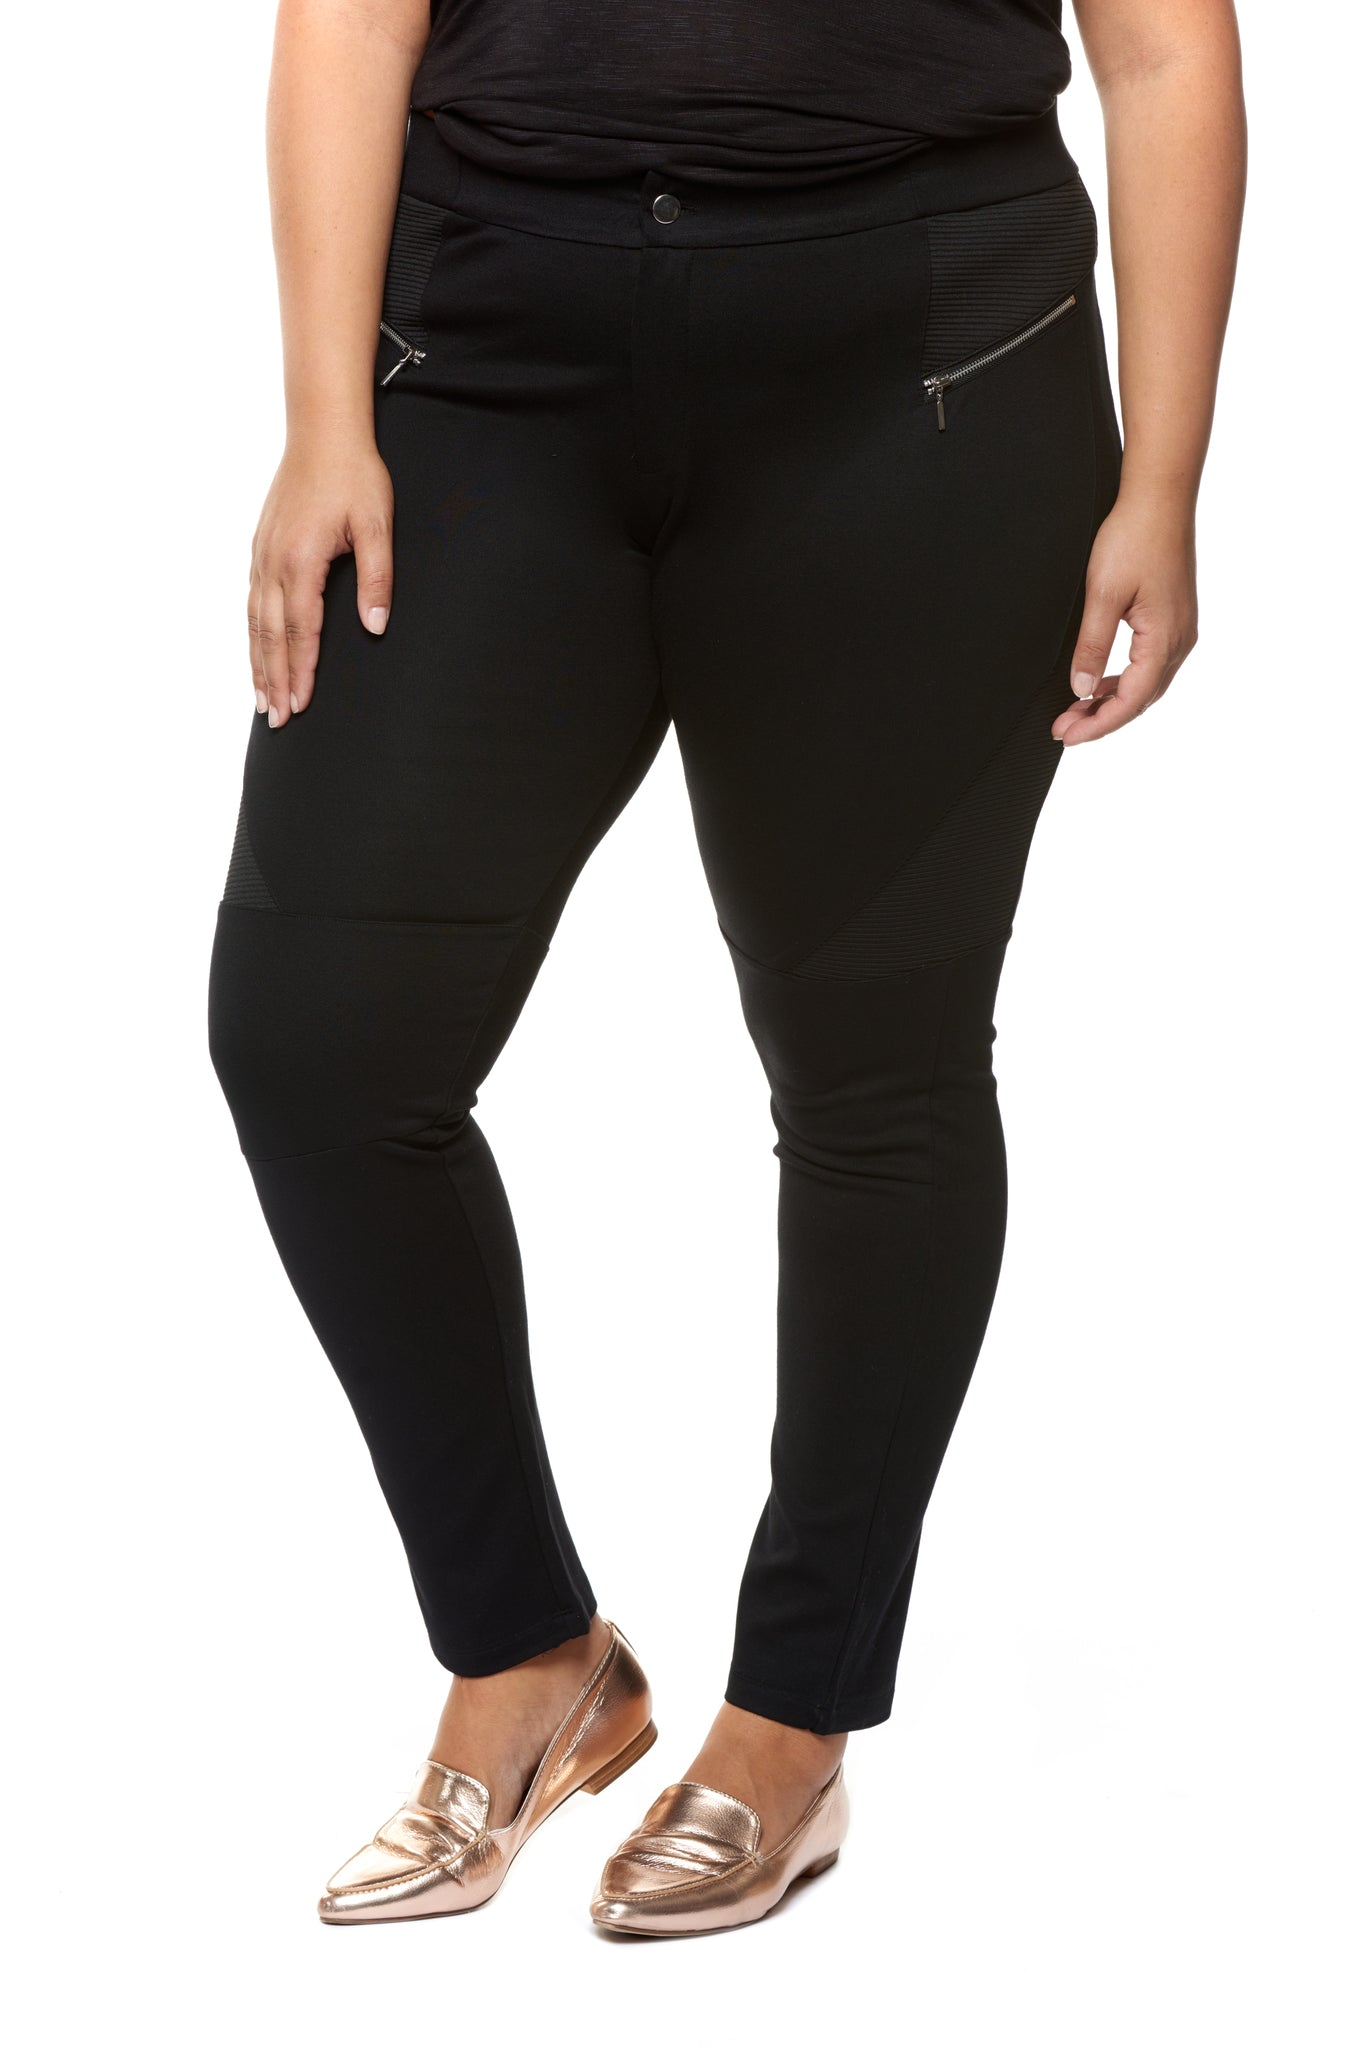 Plus Size Slimming Black Pants